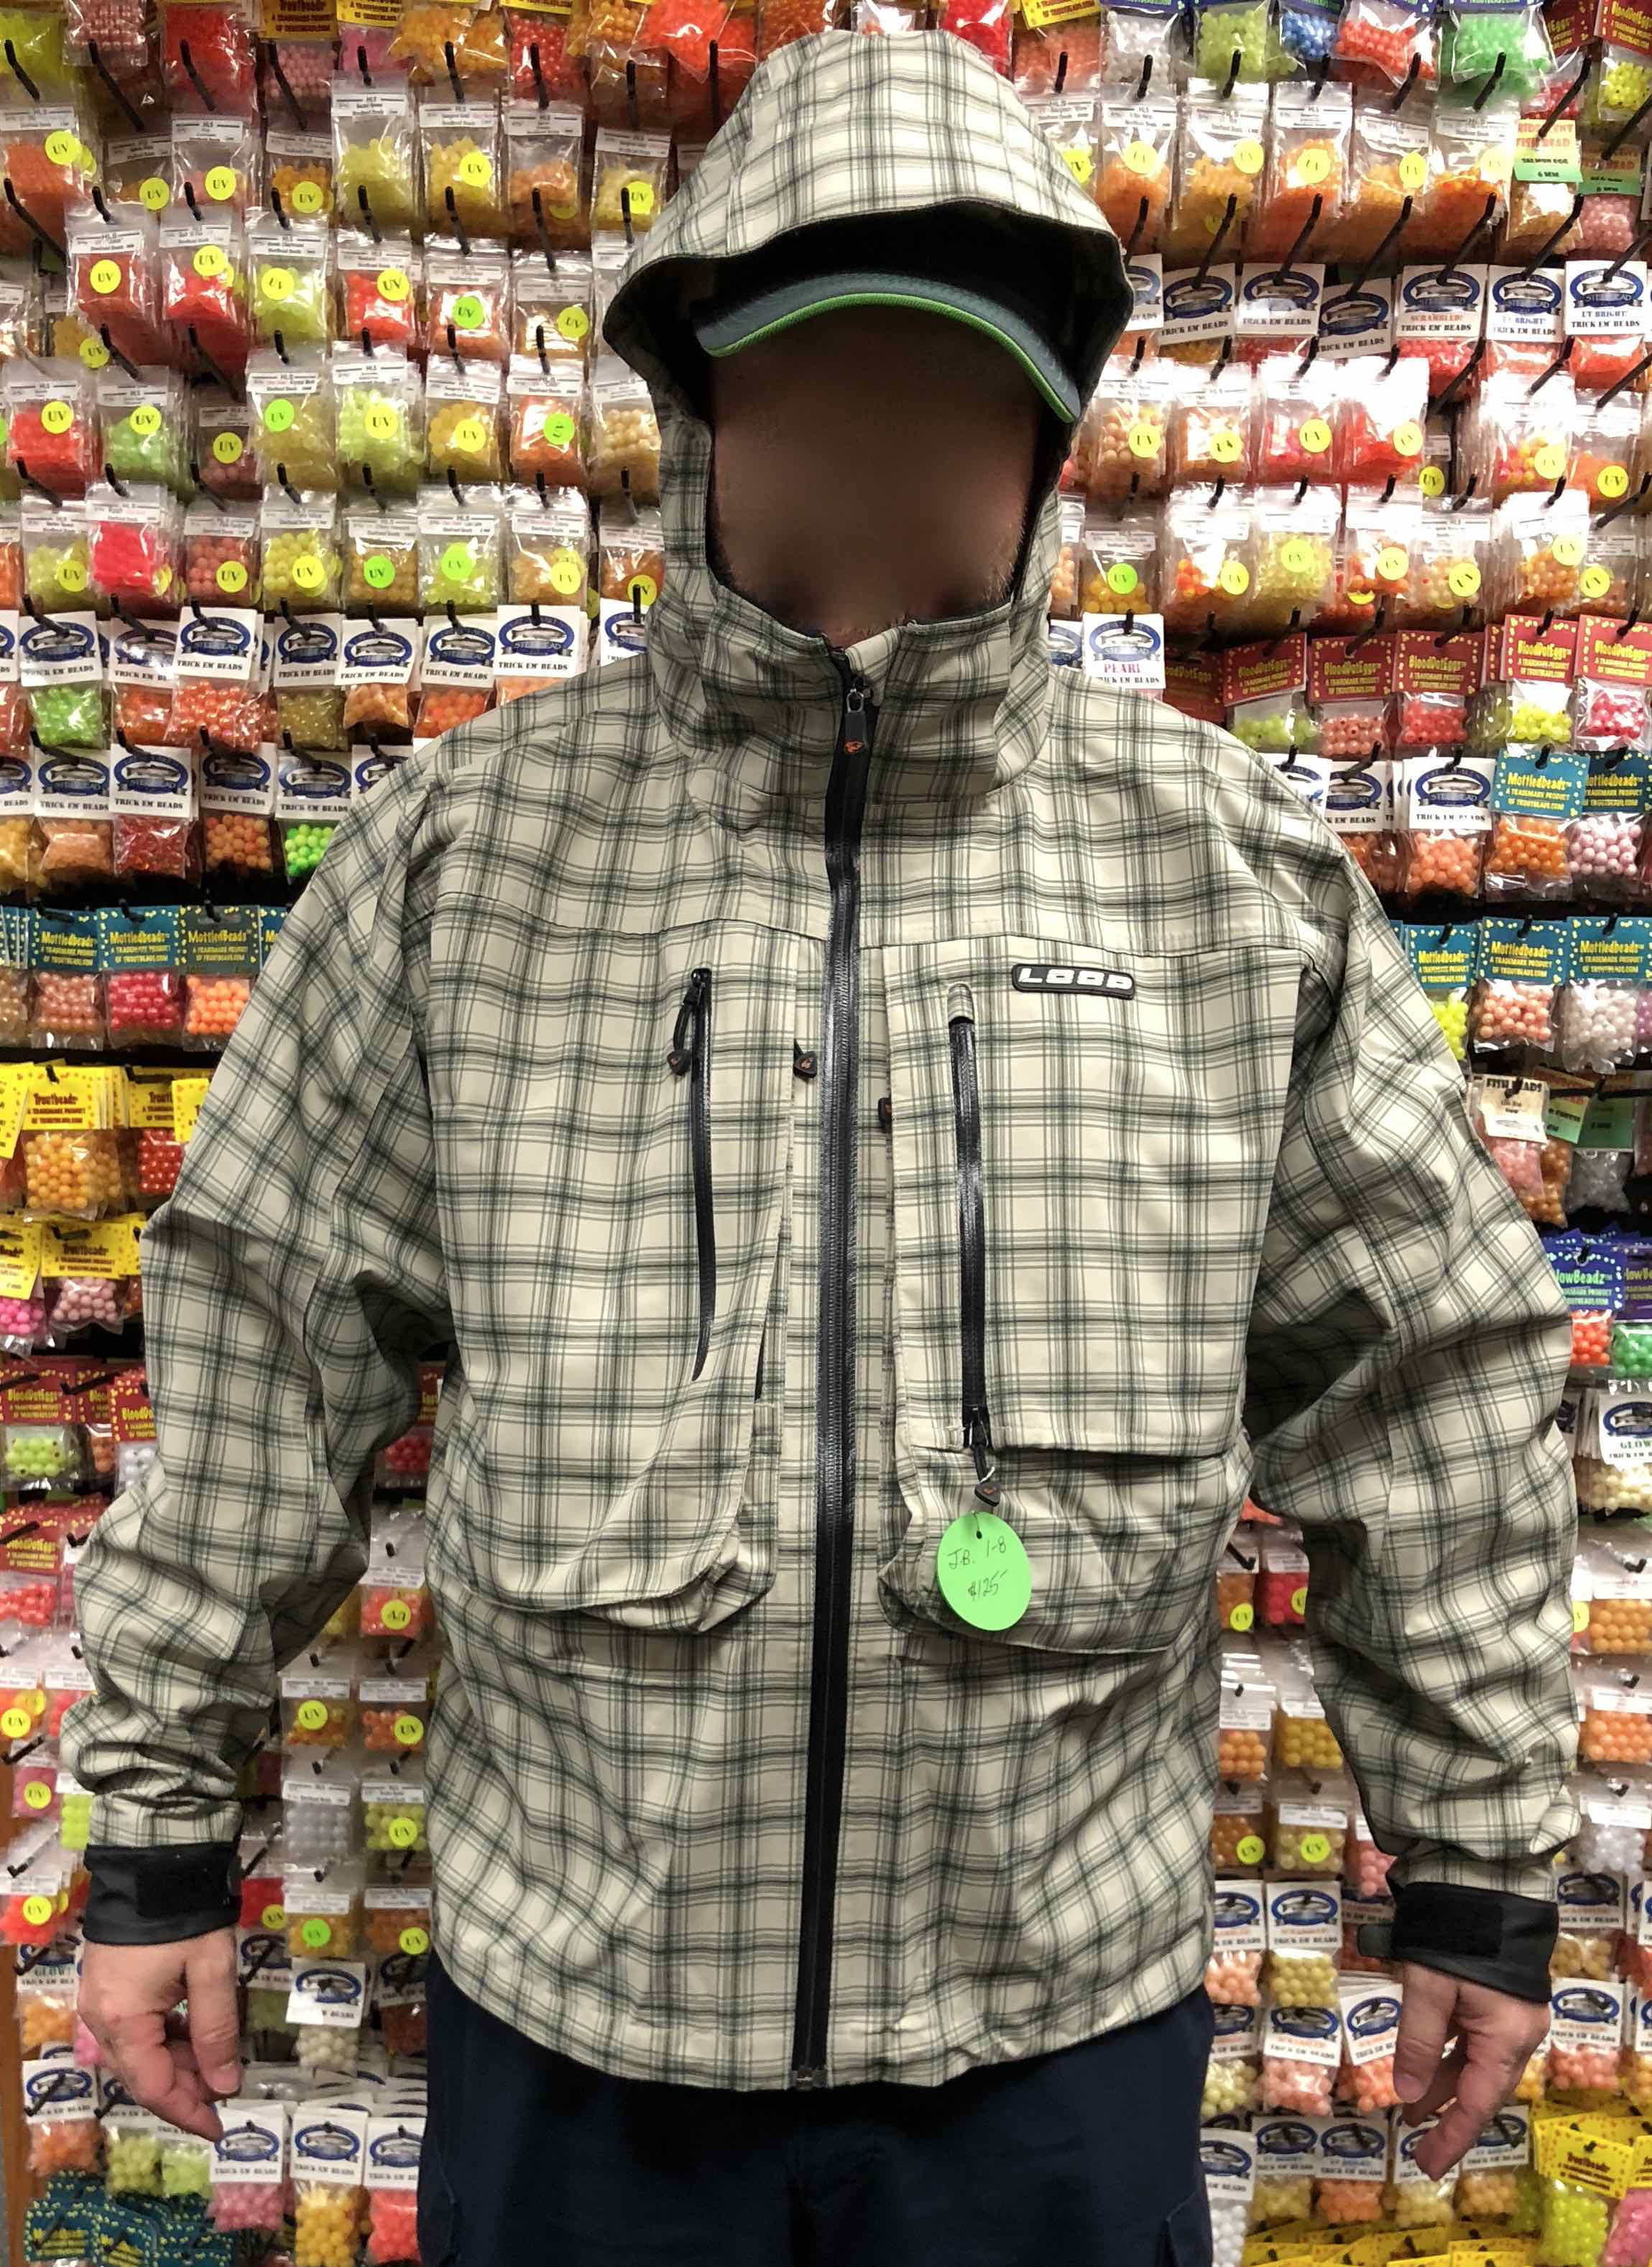 Loop Options 3L Waterproof, Windproof, Breathable Jacket - Size XL - LIKE NEW! - $100